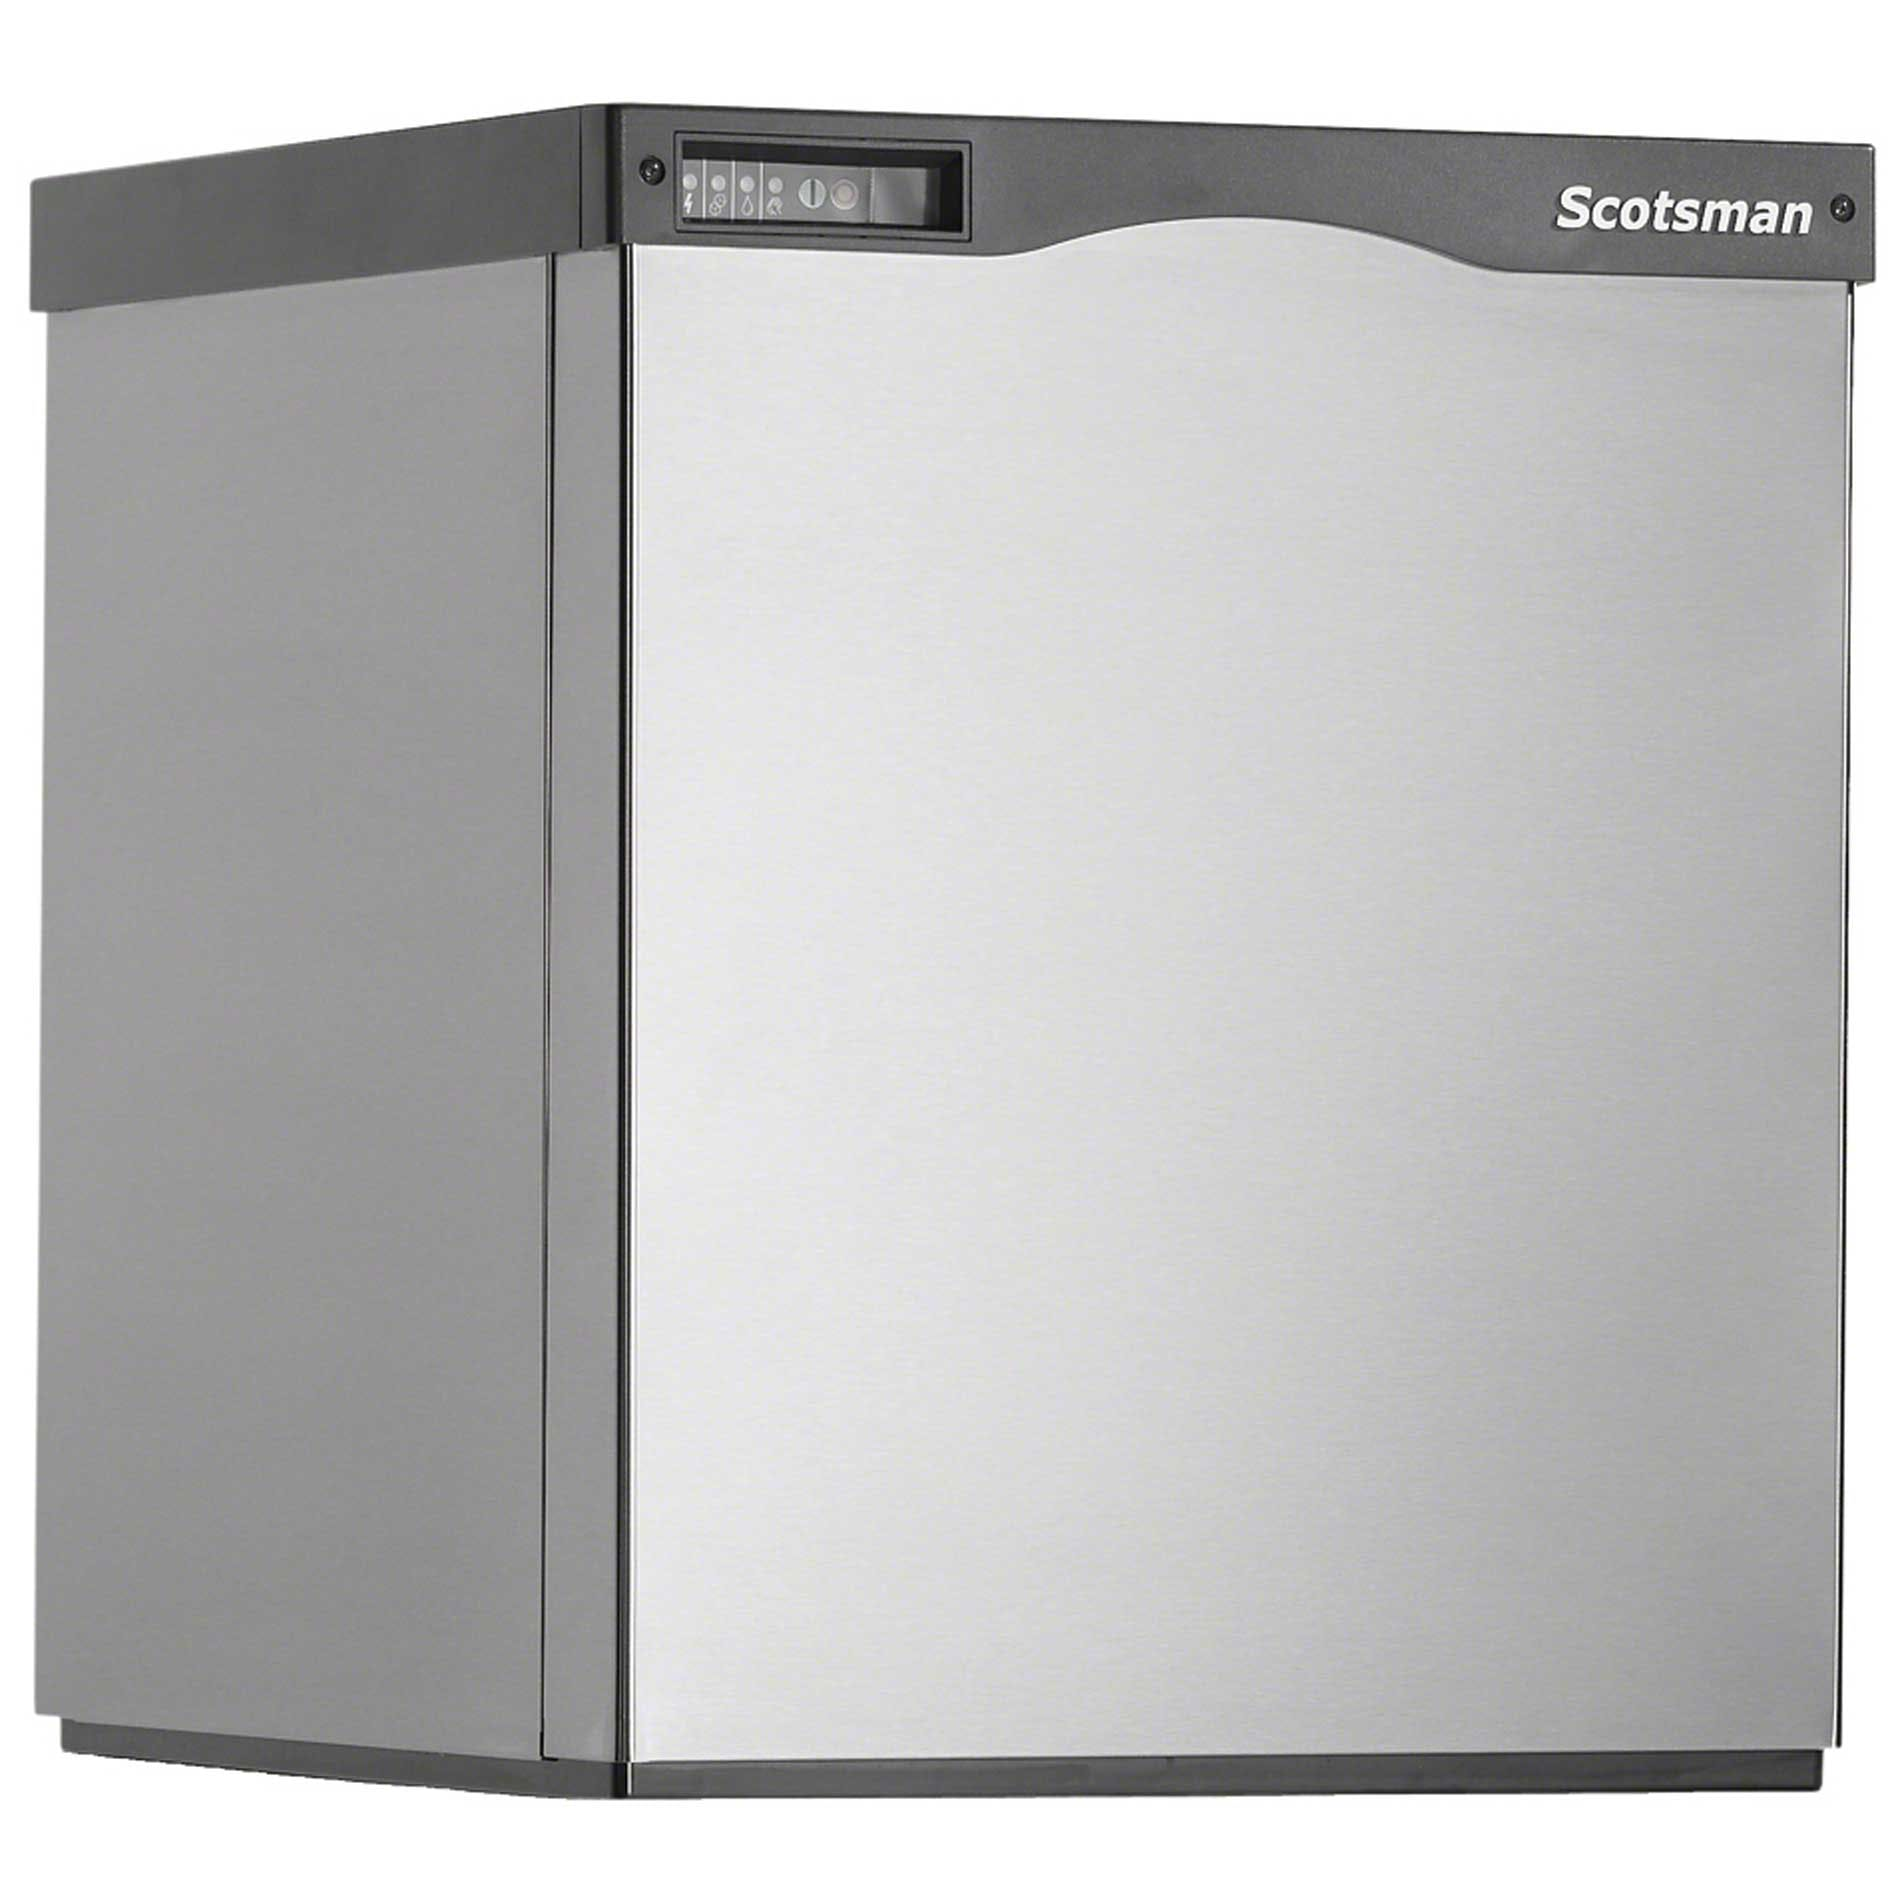 Scotsman - N0922L-1 1000 lb Modular Remote Low Side Nugget Ice Machine - Prodigy® Series Ice machine sold by Food Service Warehouse